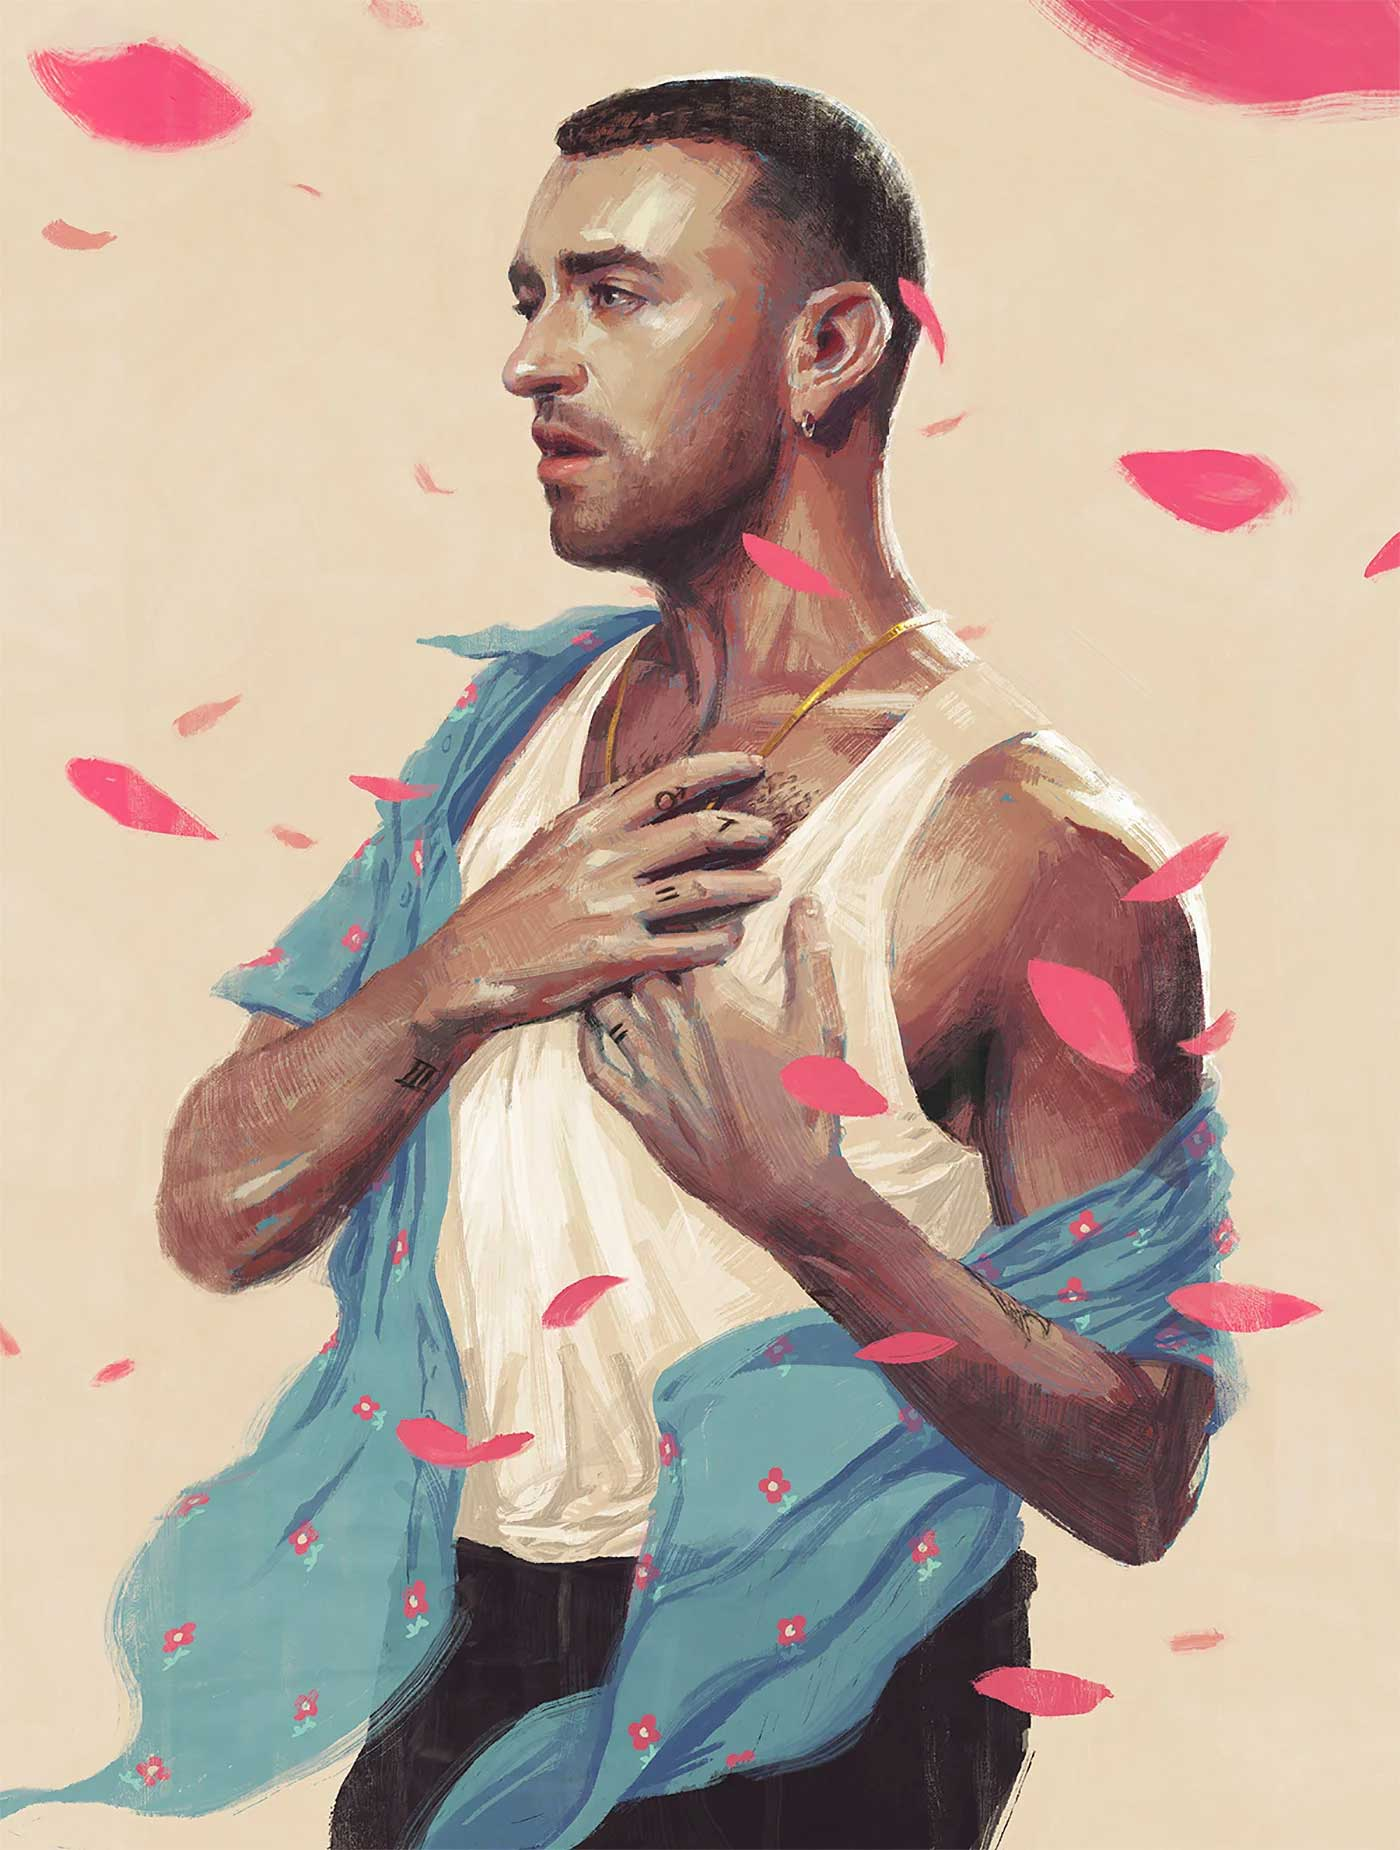 Digital Paintings von Sam Spratt Sam-Spratt-digital-paintings_03